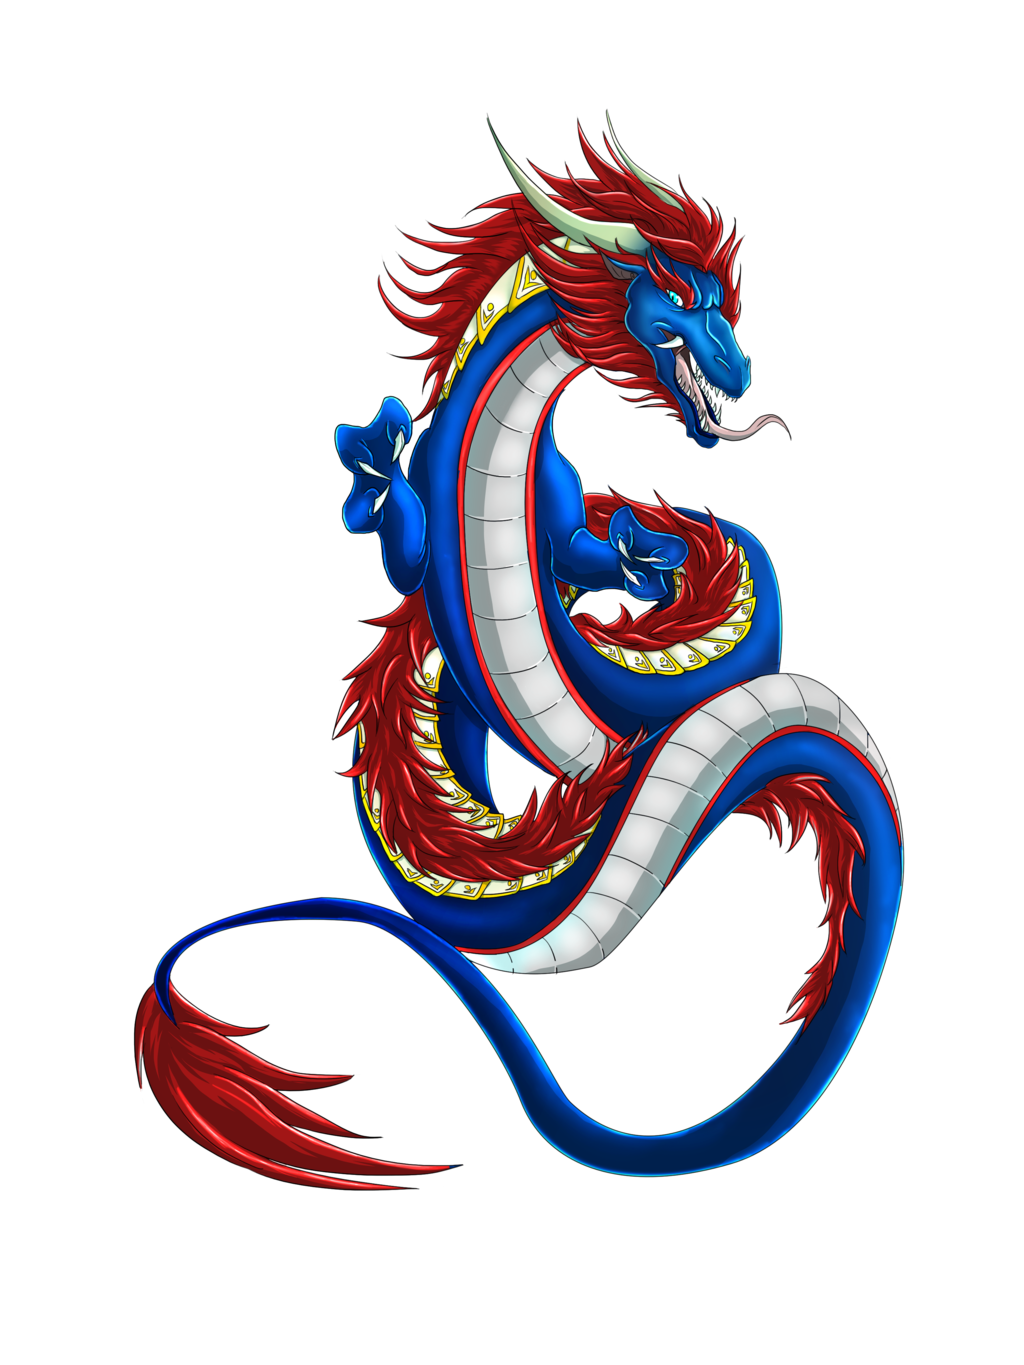 Chinese dragon png. Download hq image freepngimg